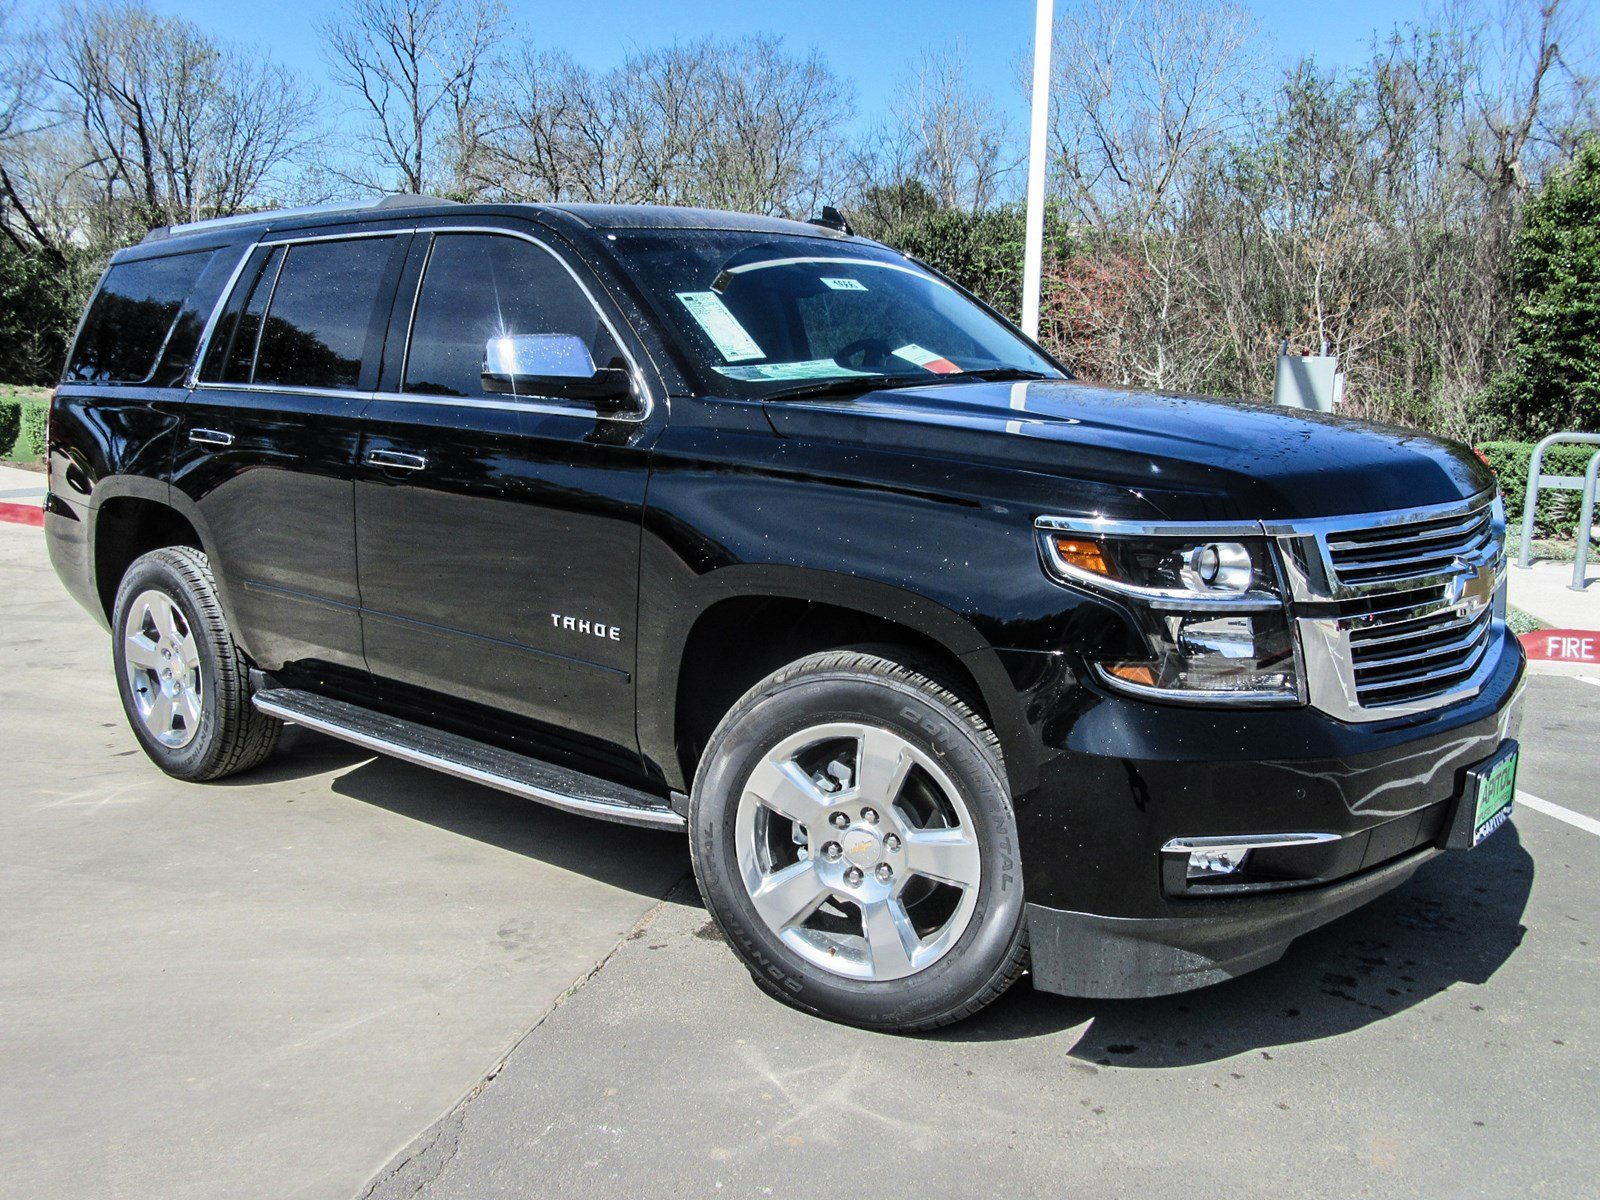 new 2017 chevrolet tahoe premier sport utility in austin 171666 capitol chevrolet. Black Bedroom Furniture Sets. Home Design Ideas